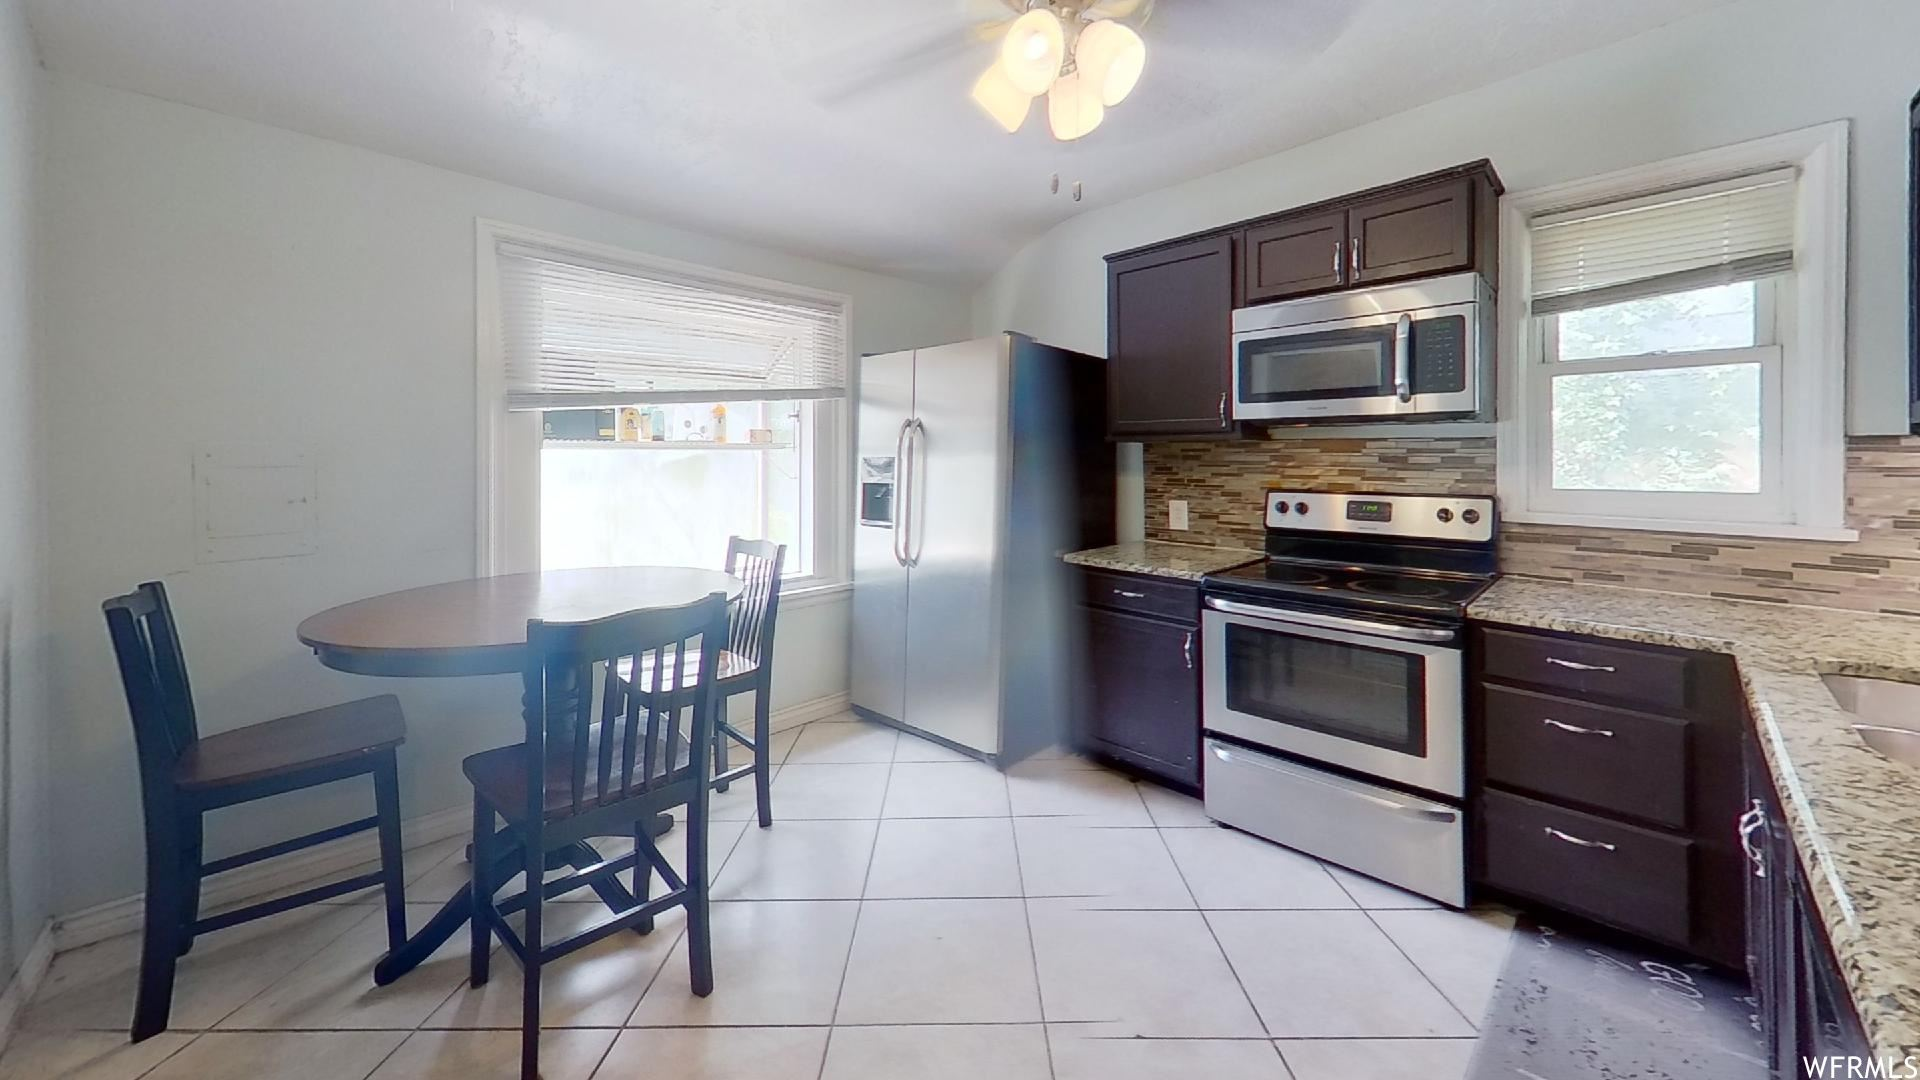 Photo of 109 COUNTRY CLUB DR, Ogden, UT 84405 (MLS # 1757652)